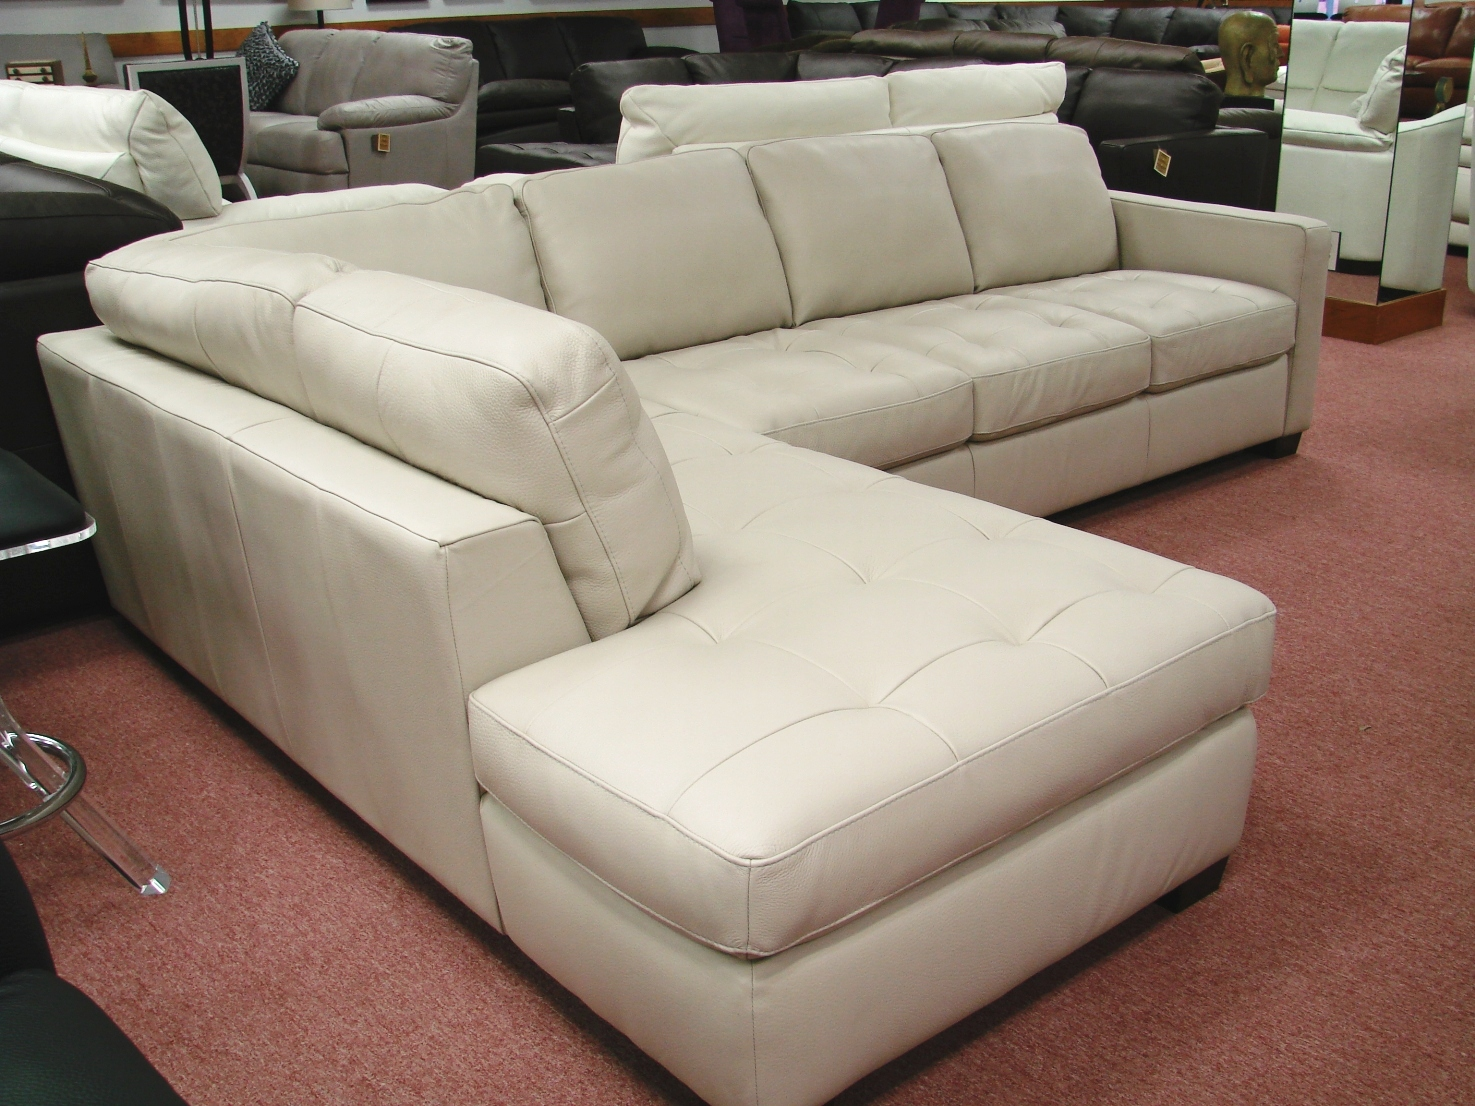 Natuzzi by interior concepts furniture leather furniture for Furniture leather sofa